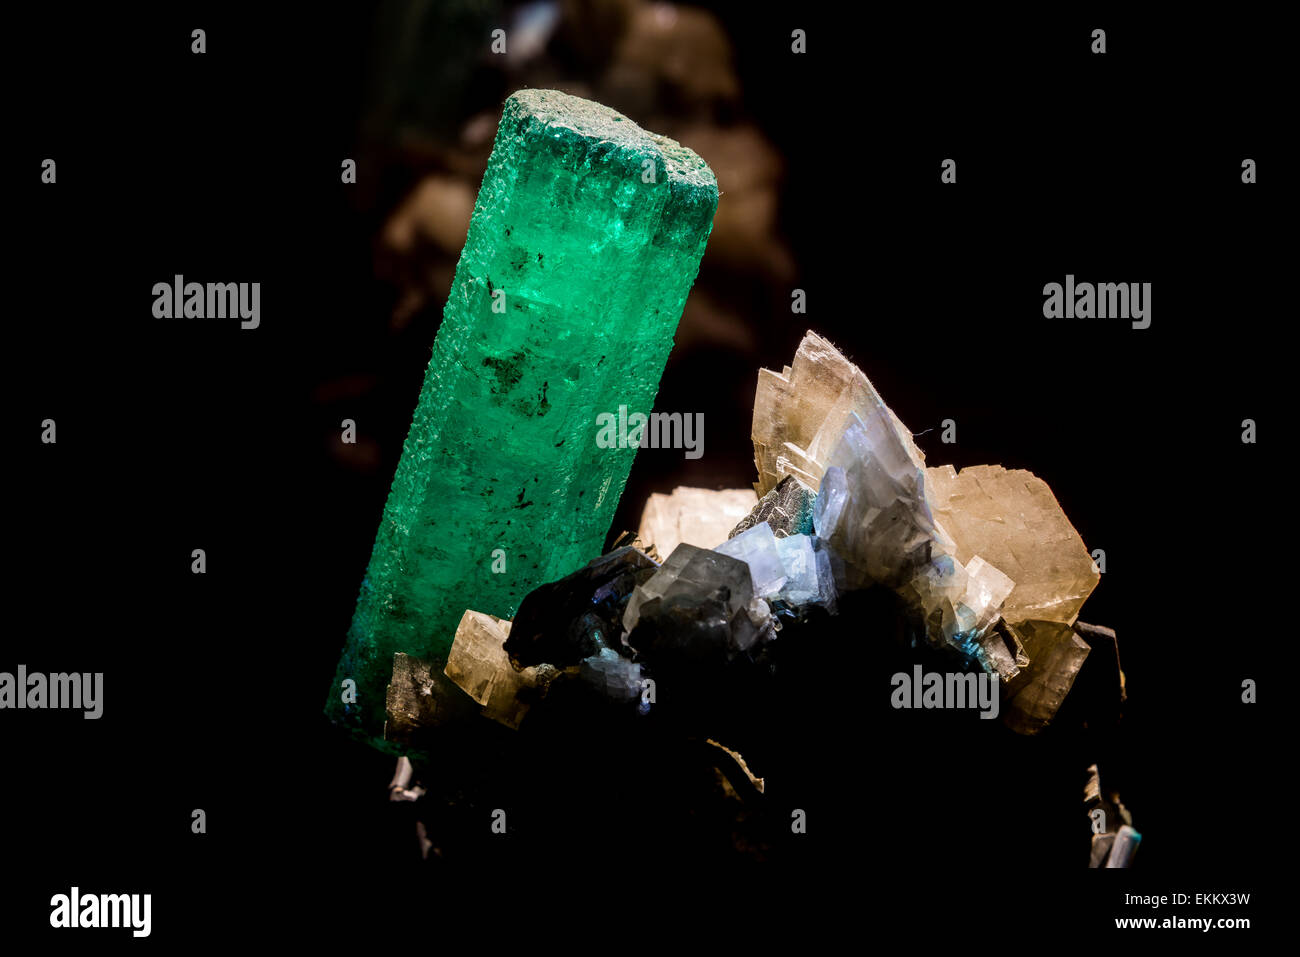 Emerald, a bright green colored variety of mineral Beryl. - Stock Image